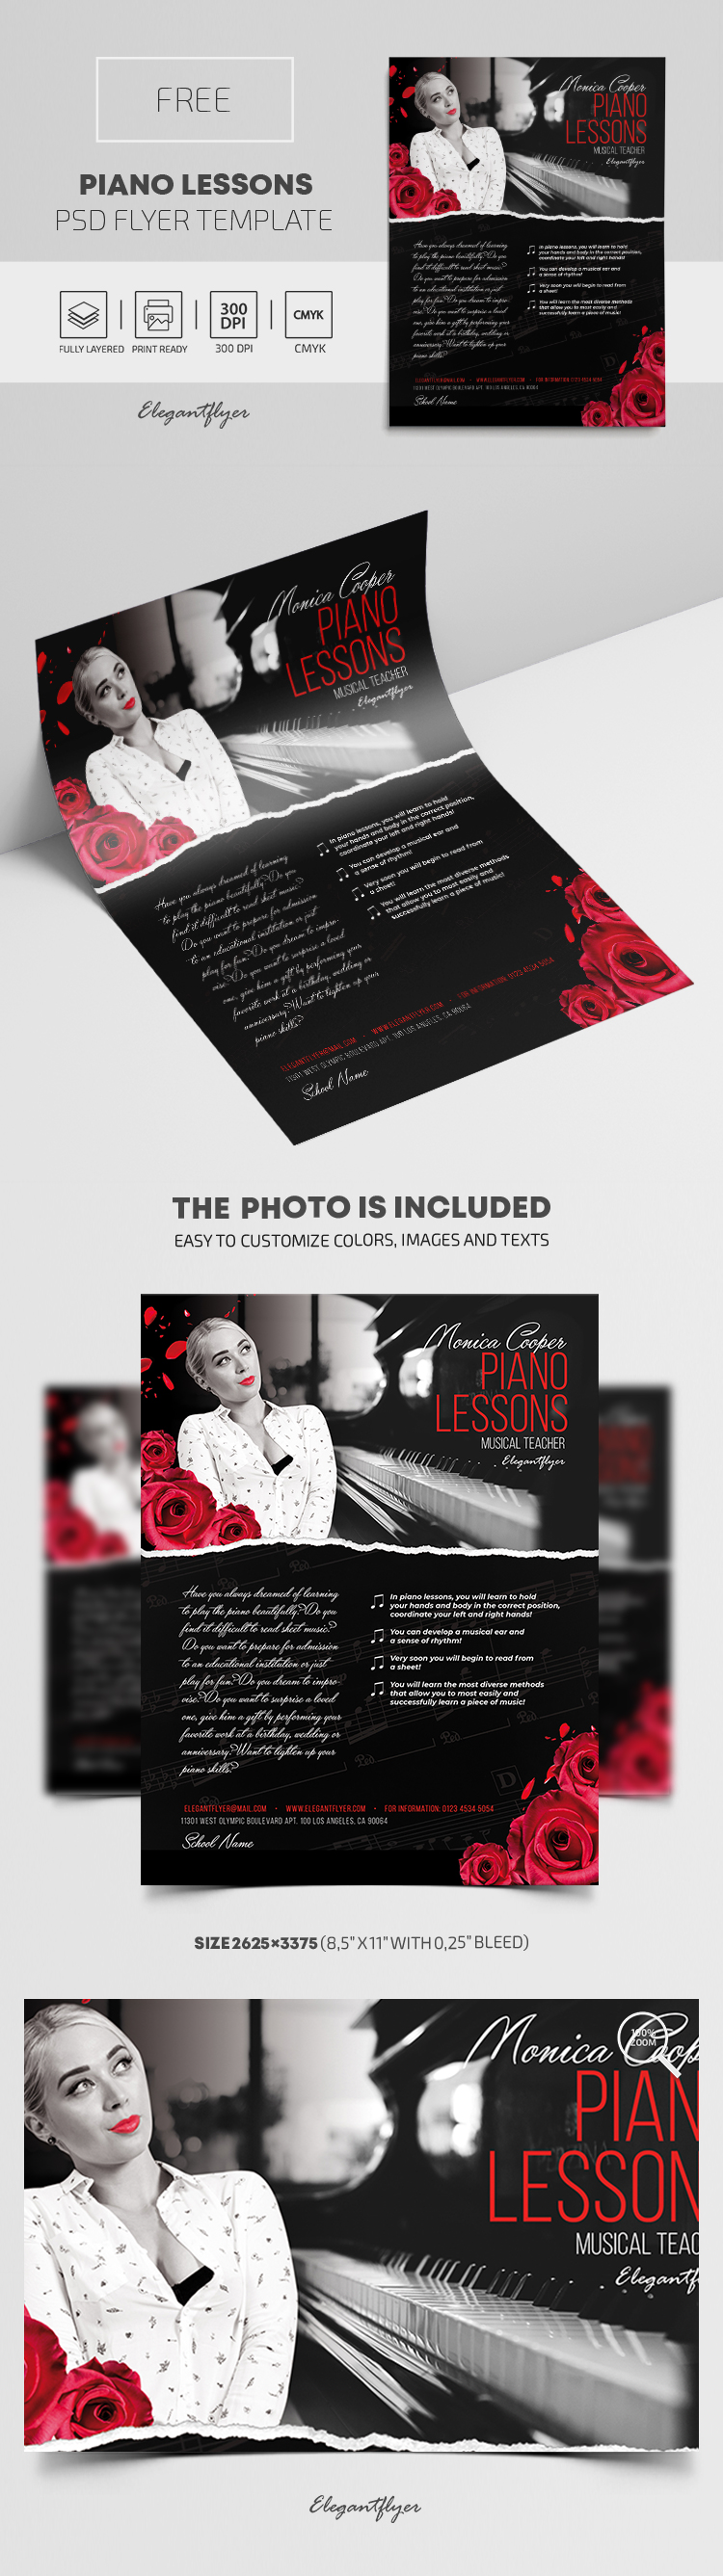 Piano Lessons – Free PSD Flyer Template